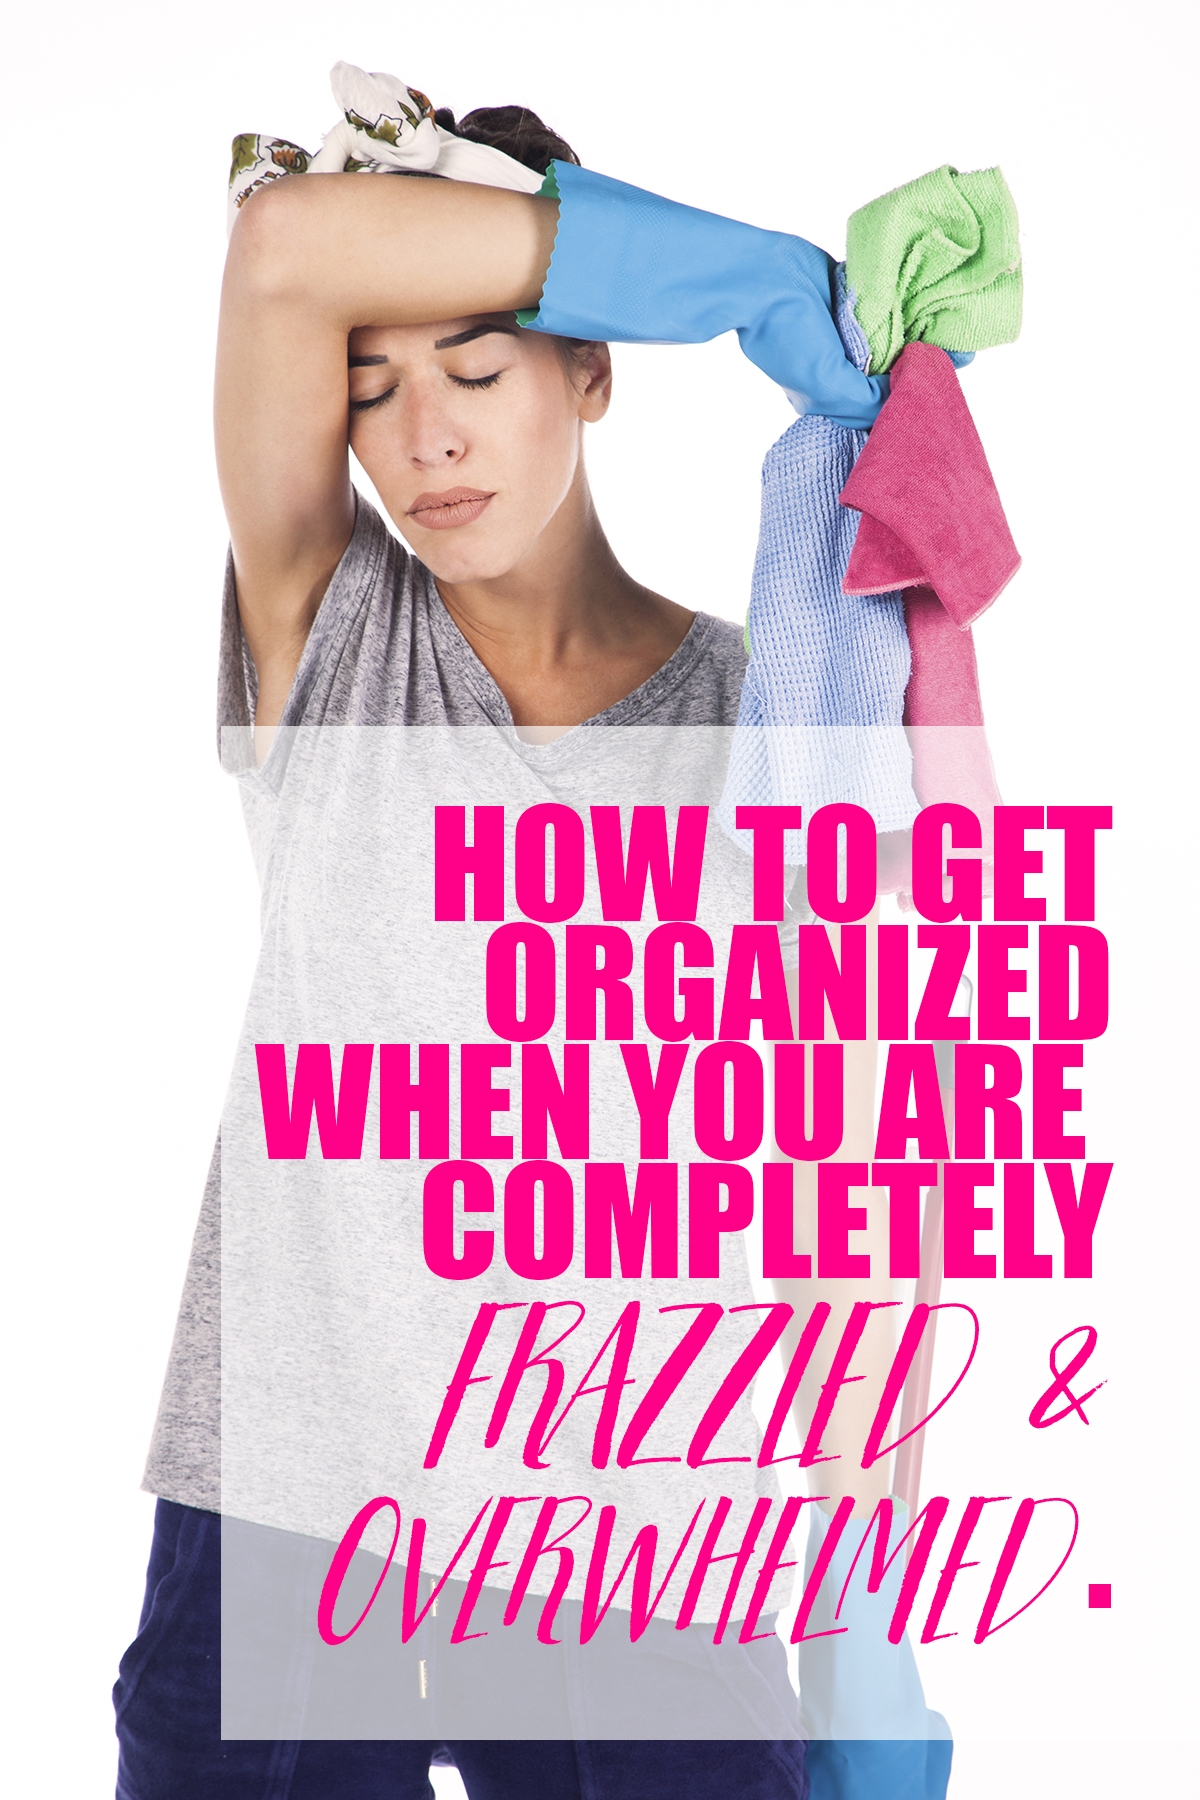 HOW TO GET ORGANIZED WHEN YOU ARE COMPLETELY FRAZZLED AND OVERWHELMED. Use these 5 simple tips to make cleaning and organizing so much easier!